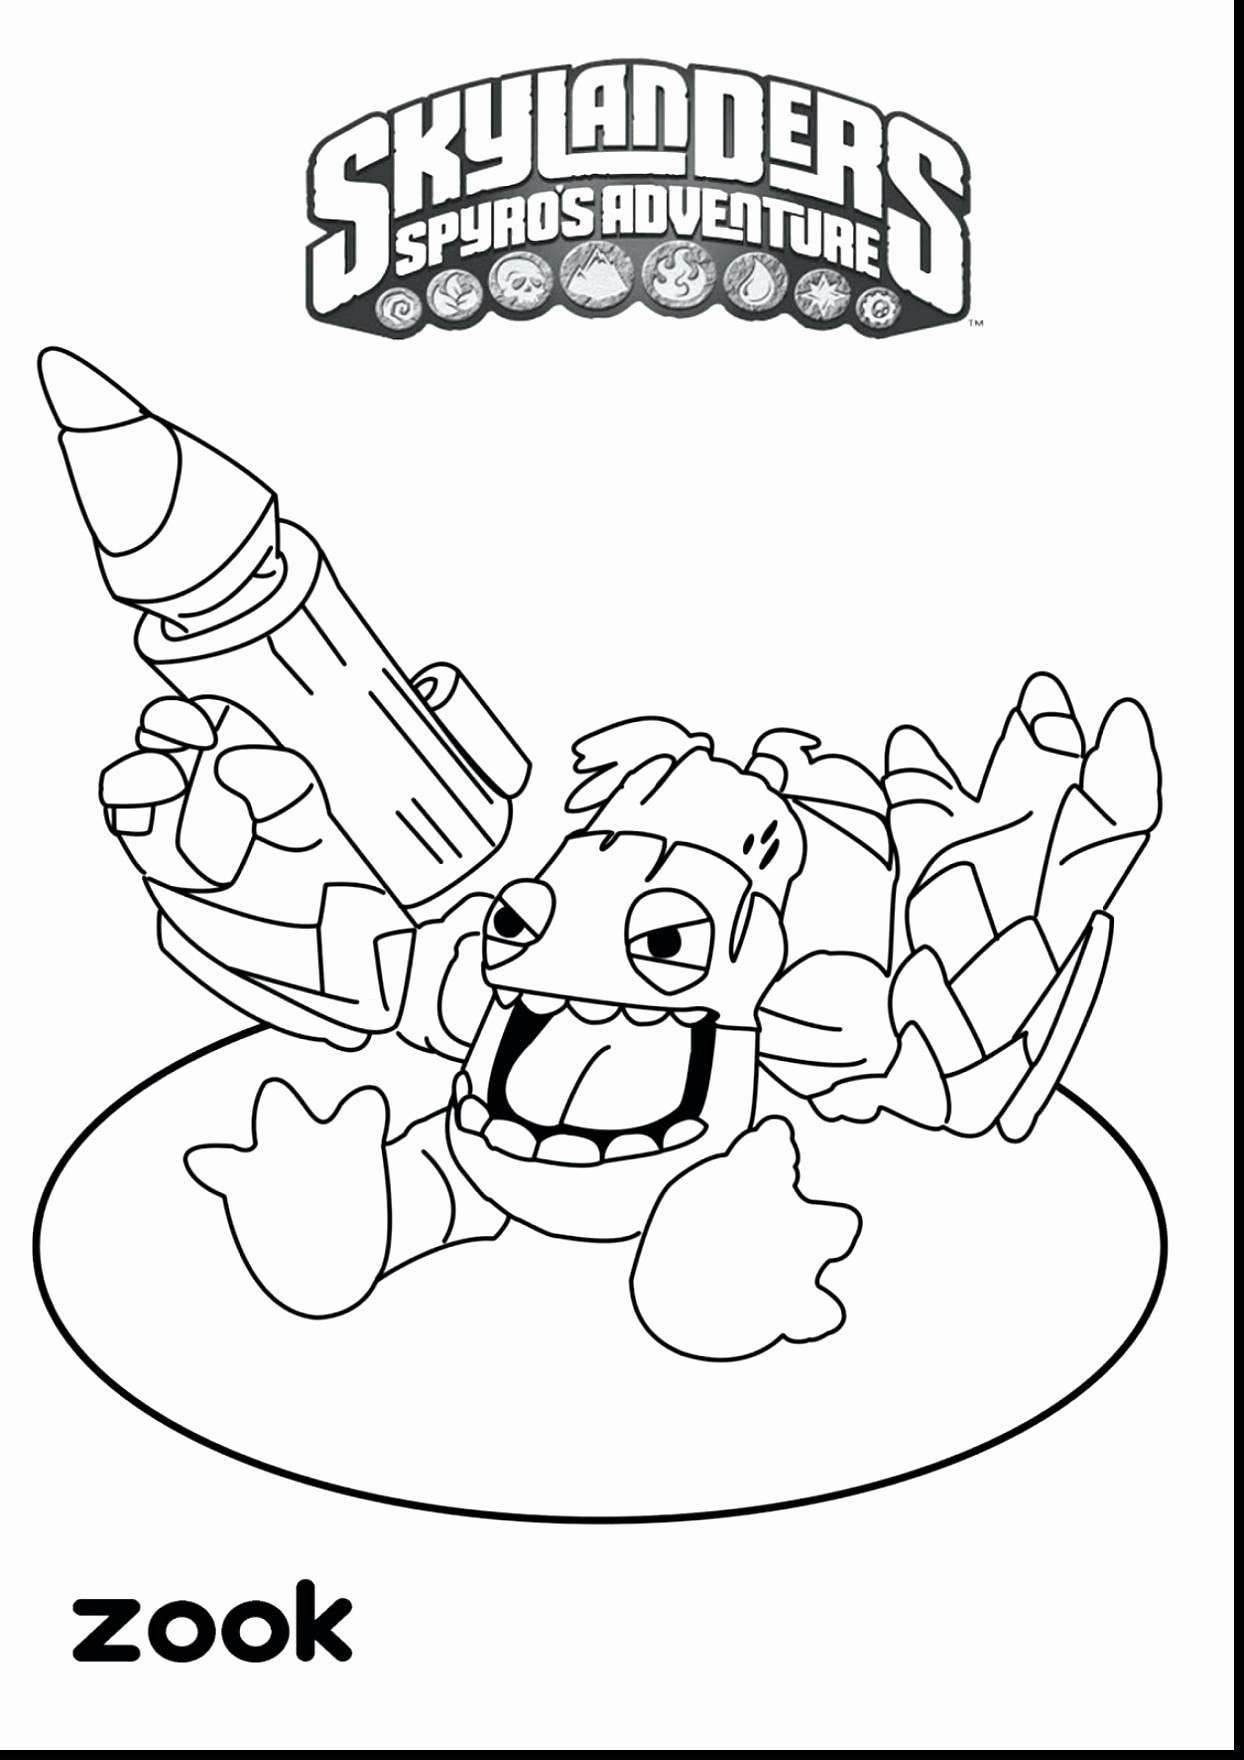 coloring pages for cars Collection-Pages Brilliant Easy to Draw Instruments Home Coloring Pages Best Color Sheet 0d 20-t